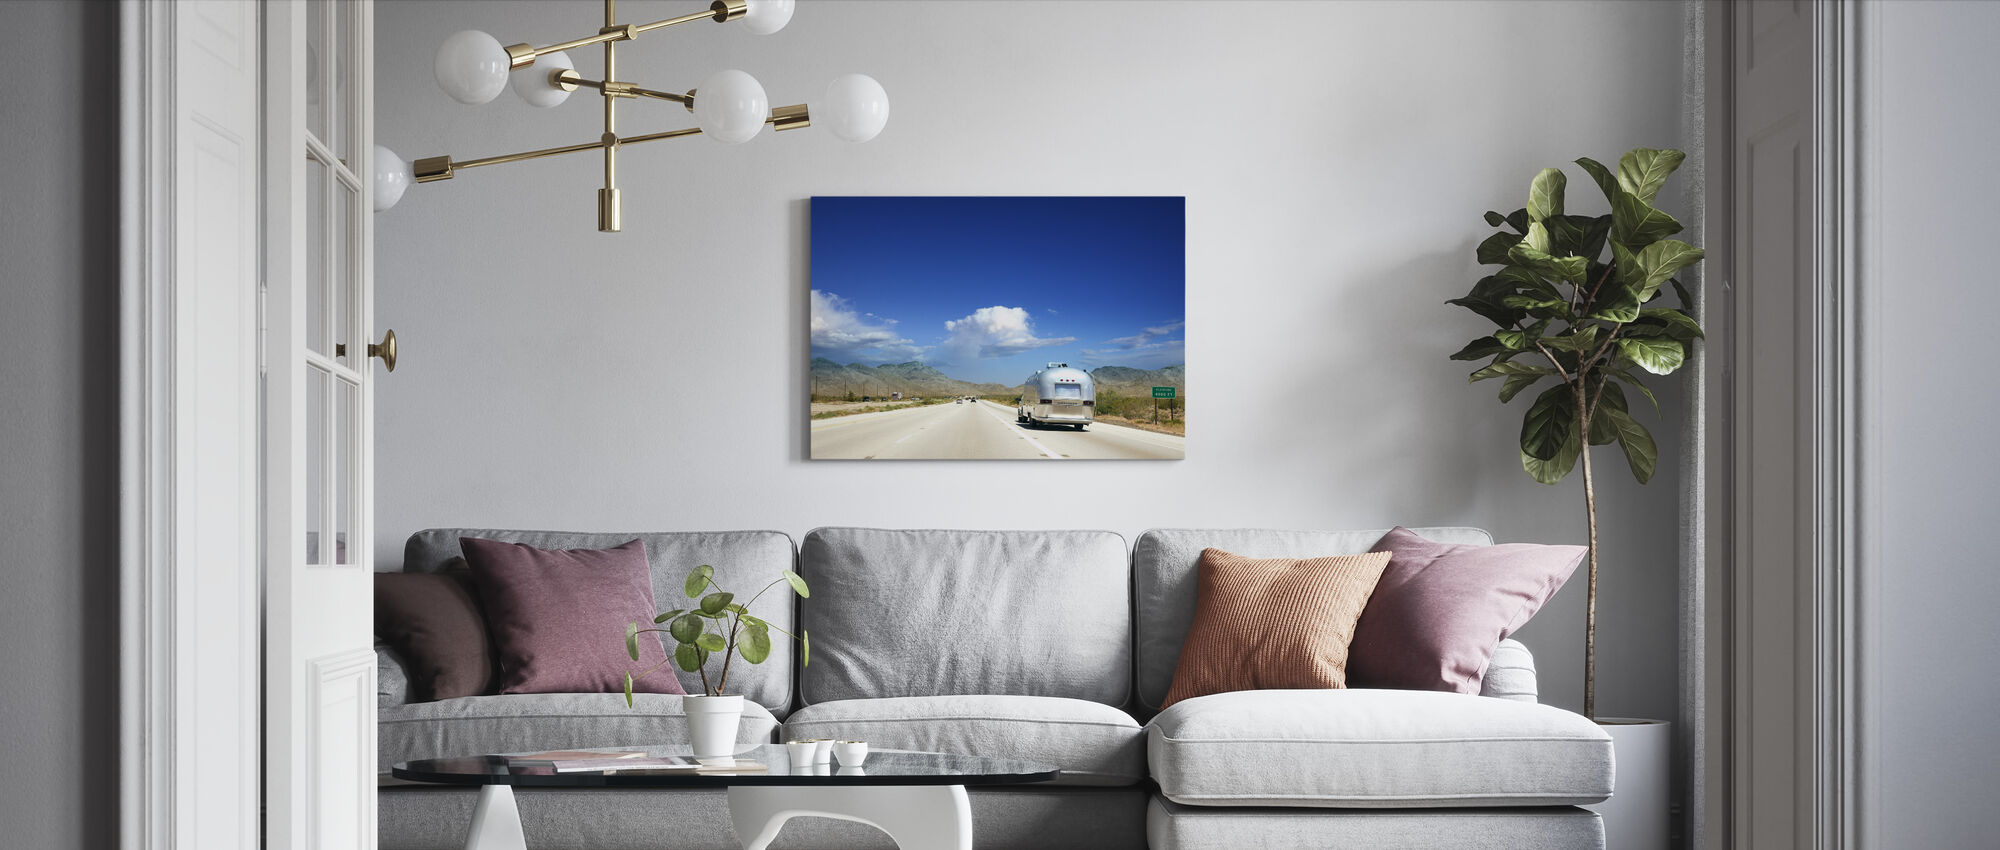 Caravan in Nevada, USA - Canvas print - Living Room